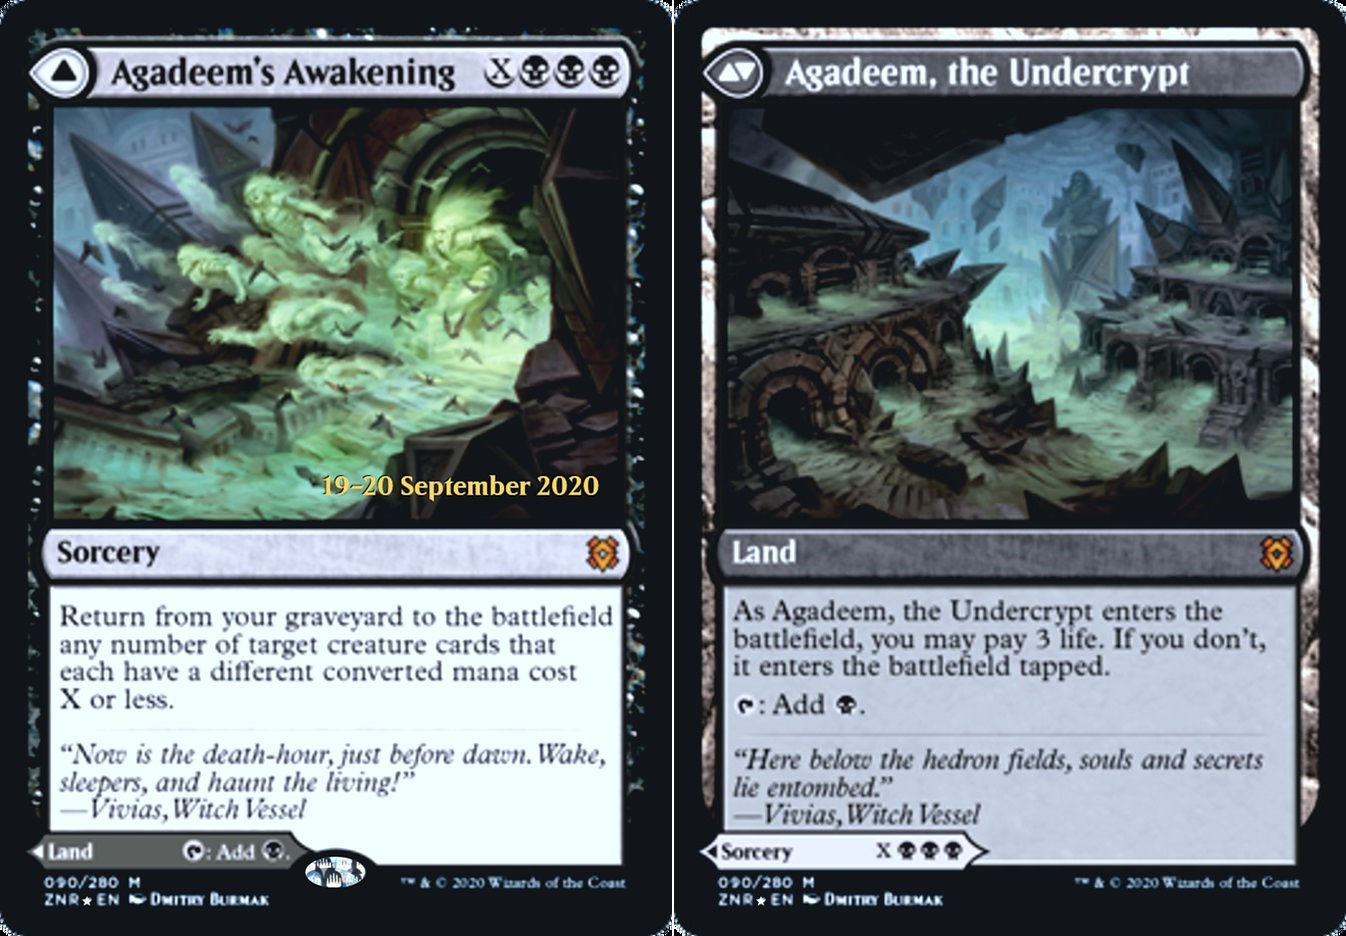 Agadeems Awakening // Agadeem, the Undercrypt - Foil - Prerelease Promo